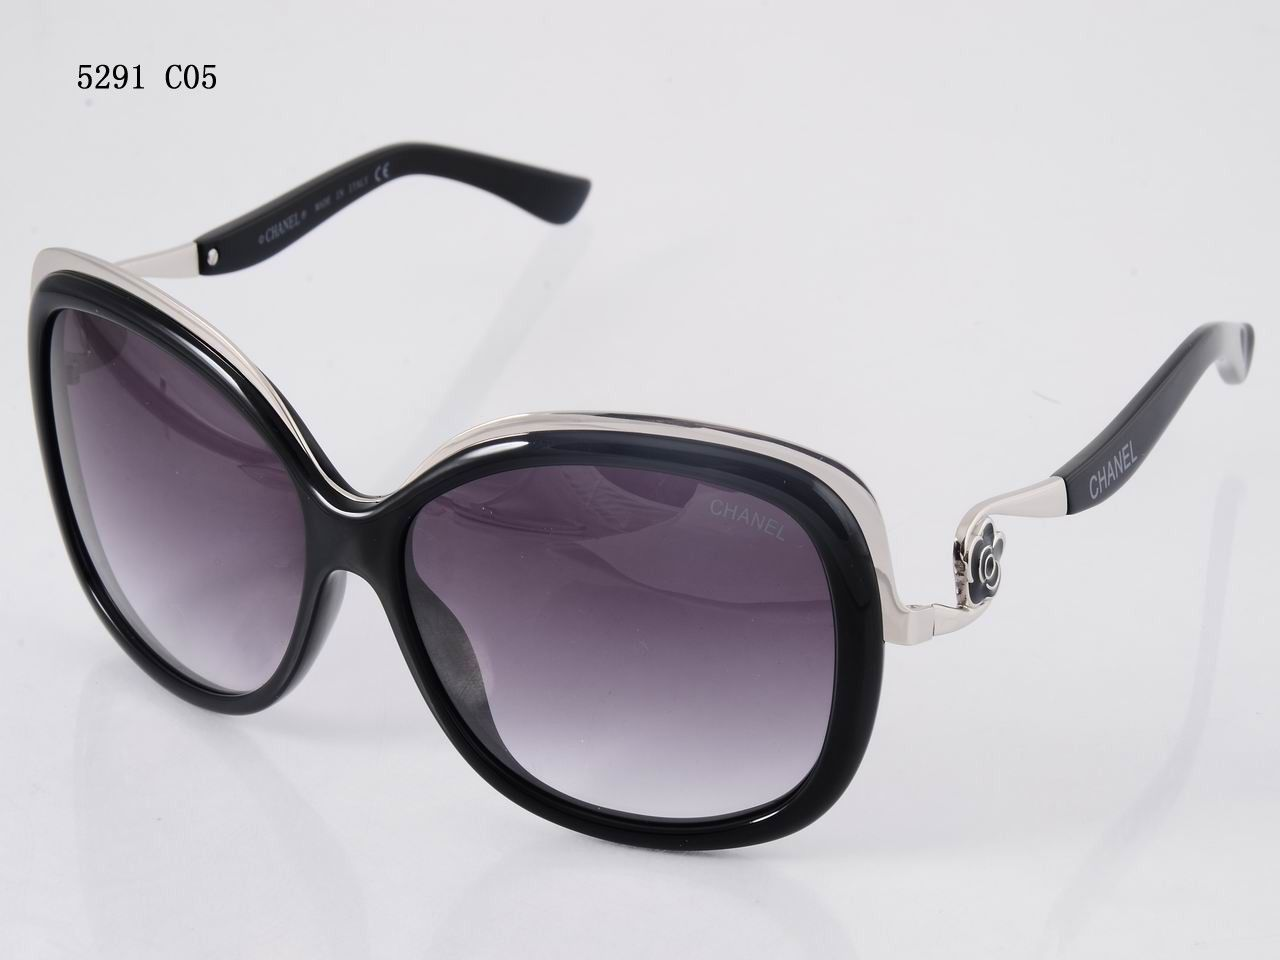 0f437af0 Acetate & patent lambskin-black sunglasses from the ...